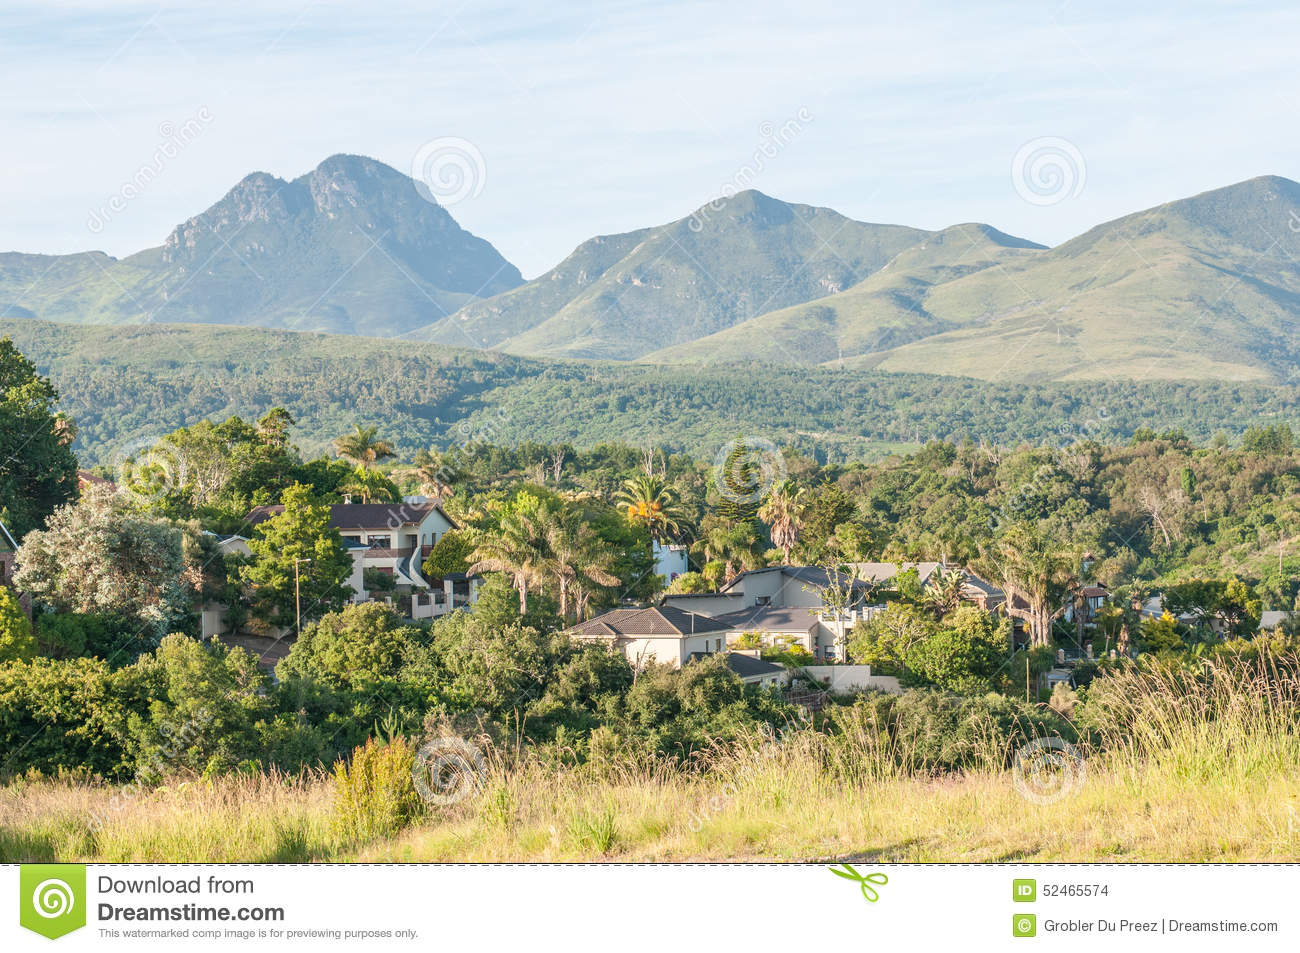 George South Africa  City pictures : GEORGE, SOUTH AFRICA JANUARY 4, 2015: View of one of the suburbs in ...